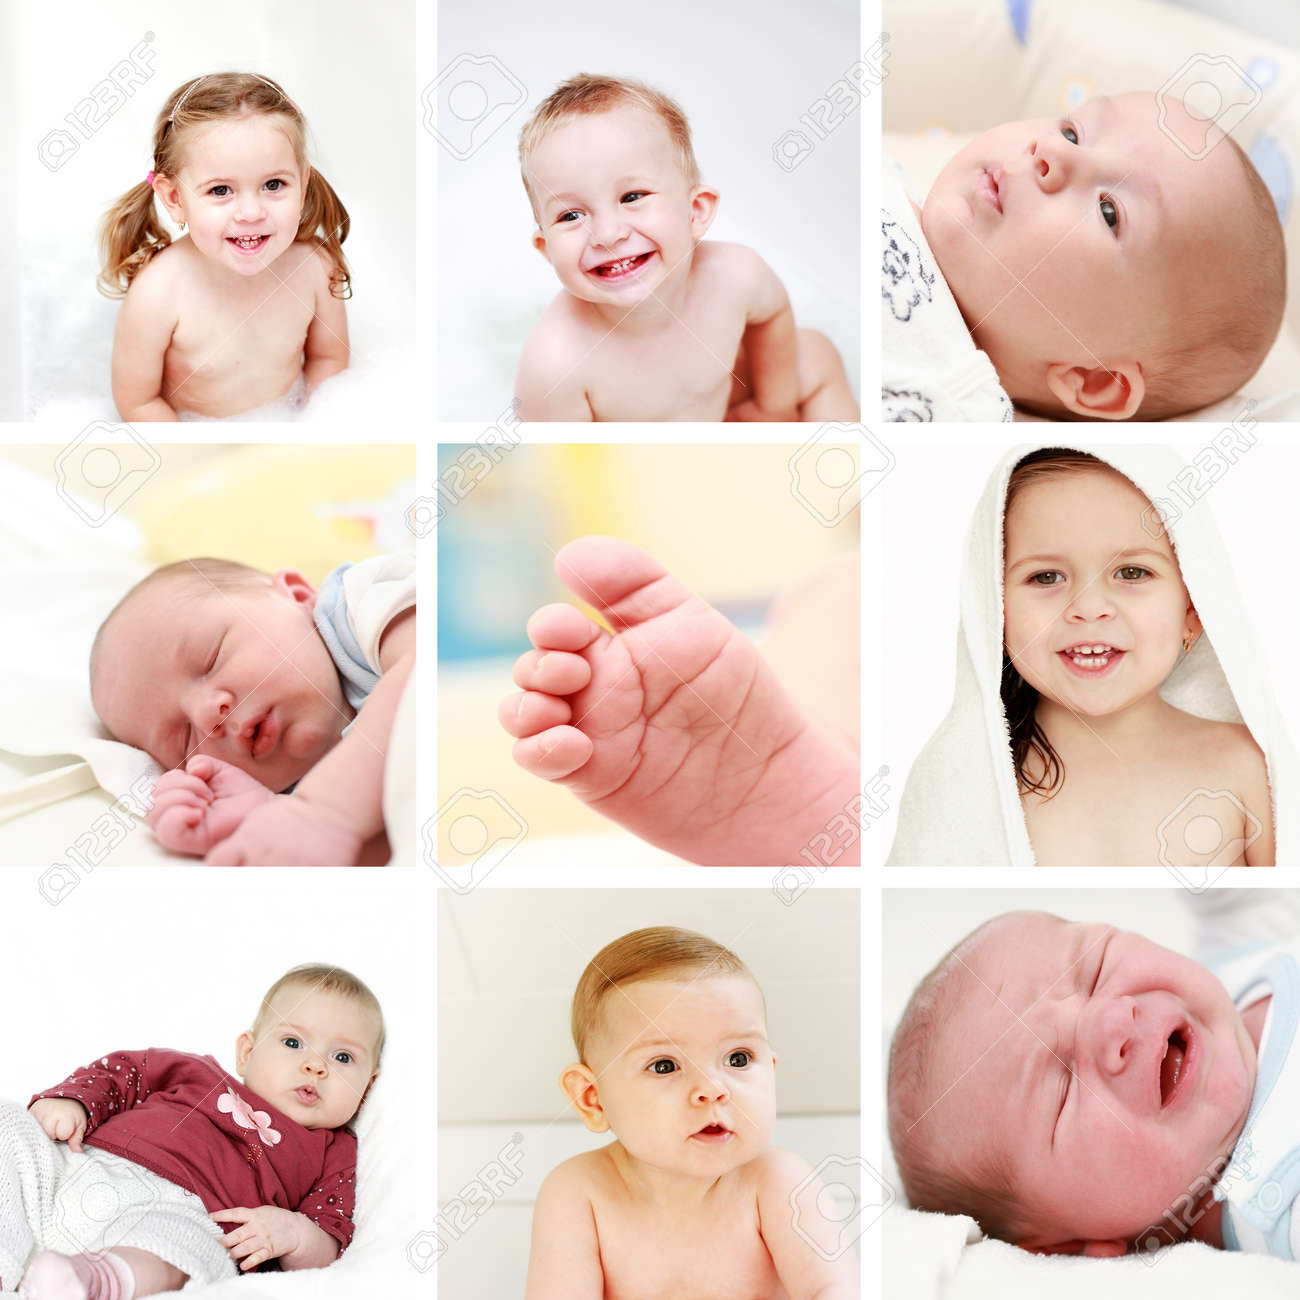 Collage Of Different Photos Of Babies And Kids Stock Photo ...